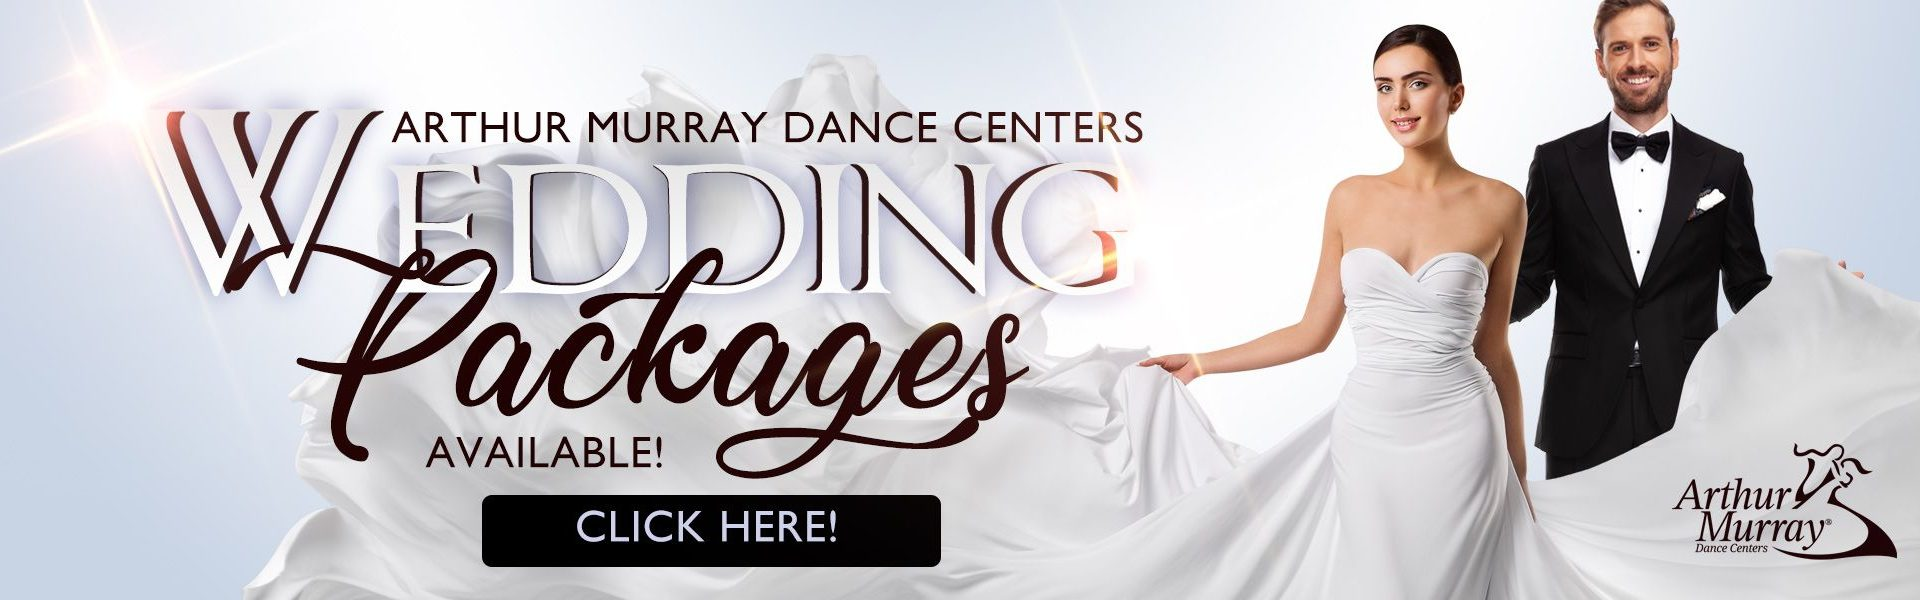 Arthur Murray Wedding Dance Packages Banner